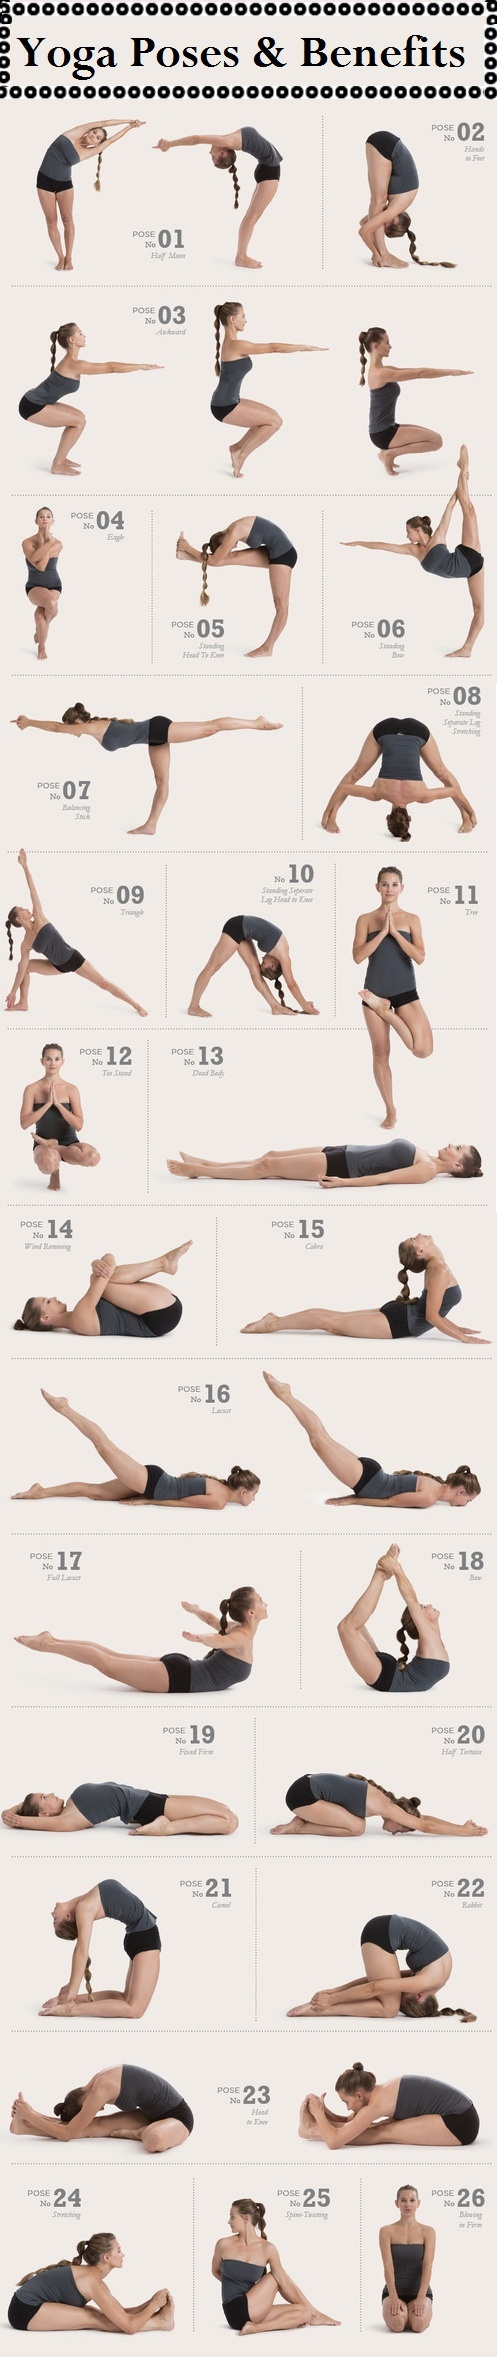 Hot Yoga Posture Sequence with benefits